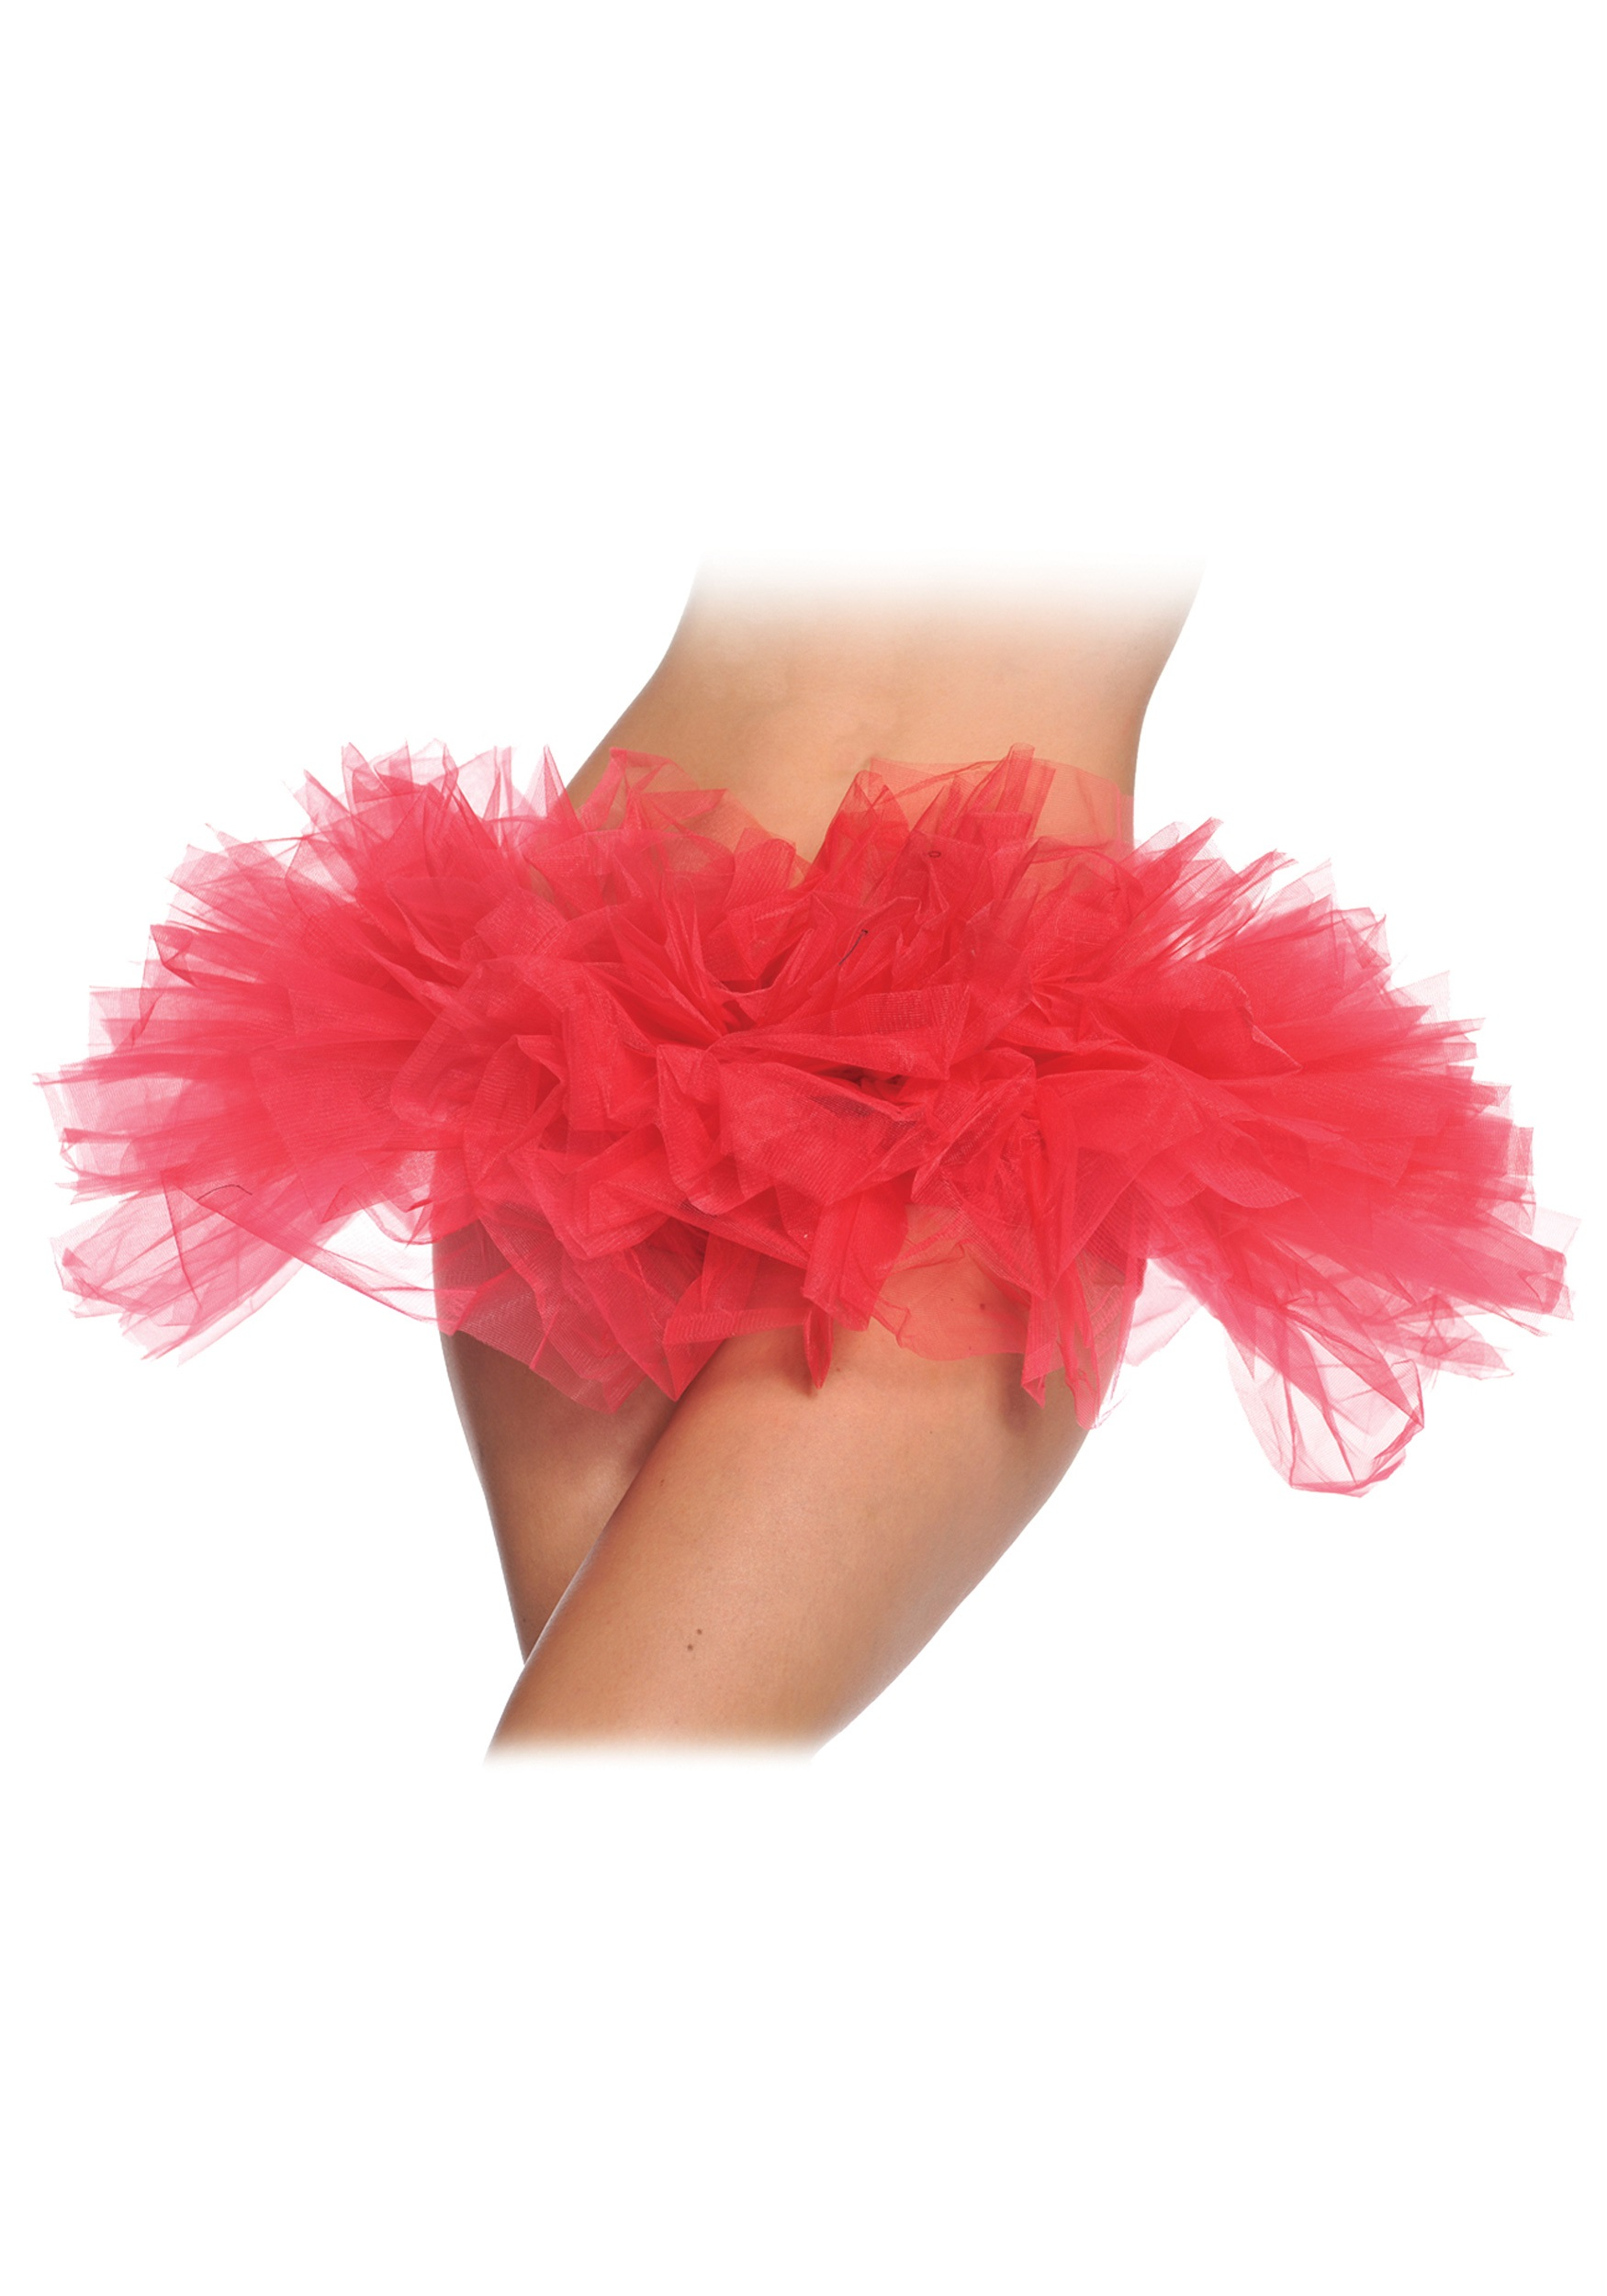 e69e1448bb1 We also carry wholesale tutus in adult and teen sizes